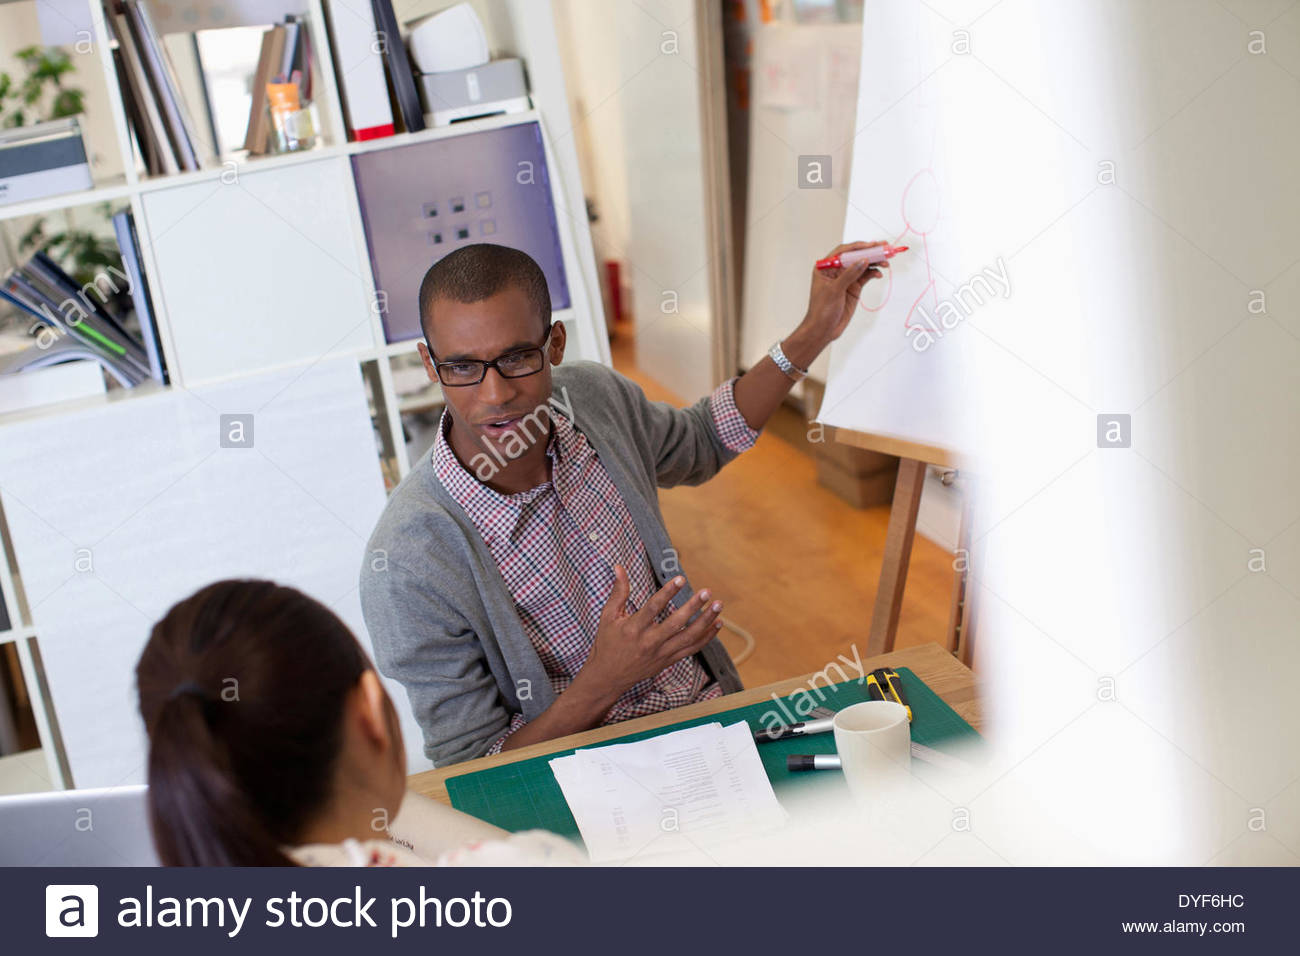 Diagram Plan Stock Photos Images Alamy Glass On The Electronic Schematic Diagramideal Technology Background Businessman Drawing Flip Chart In Office Image